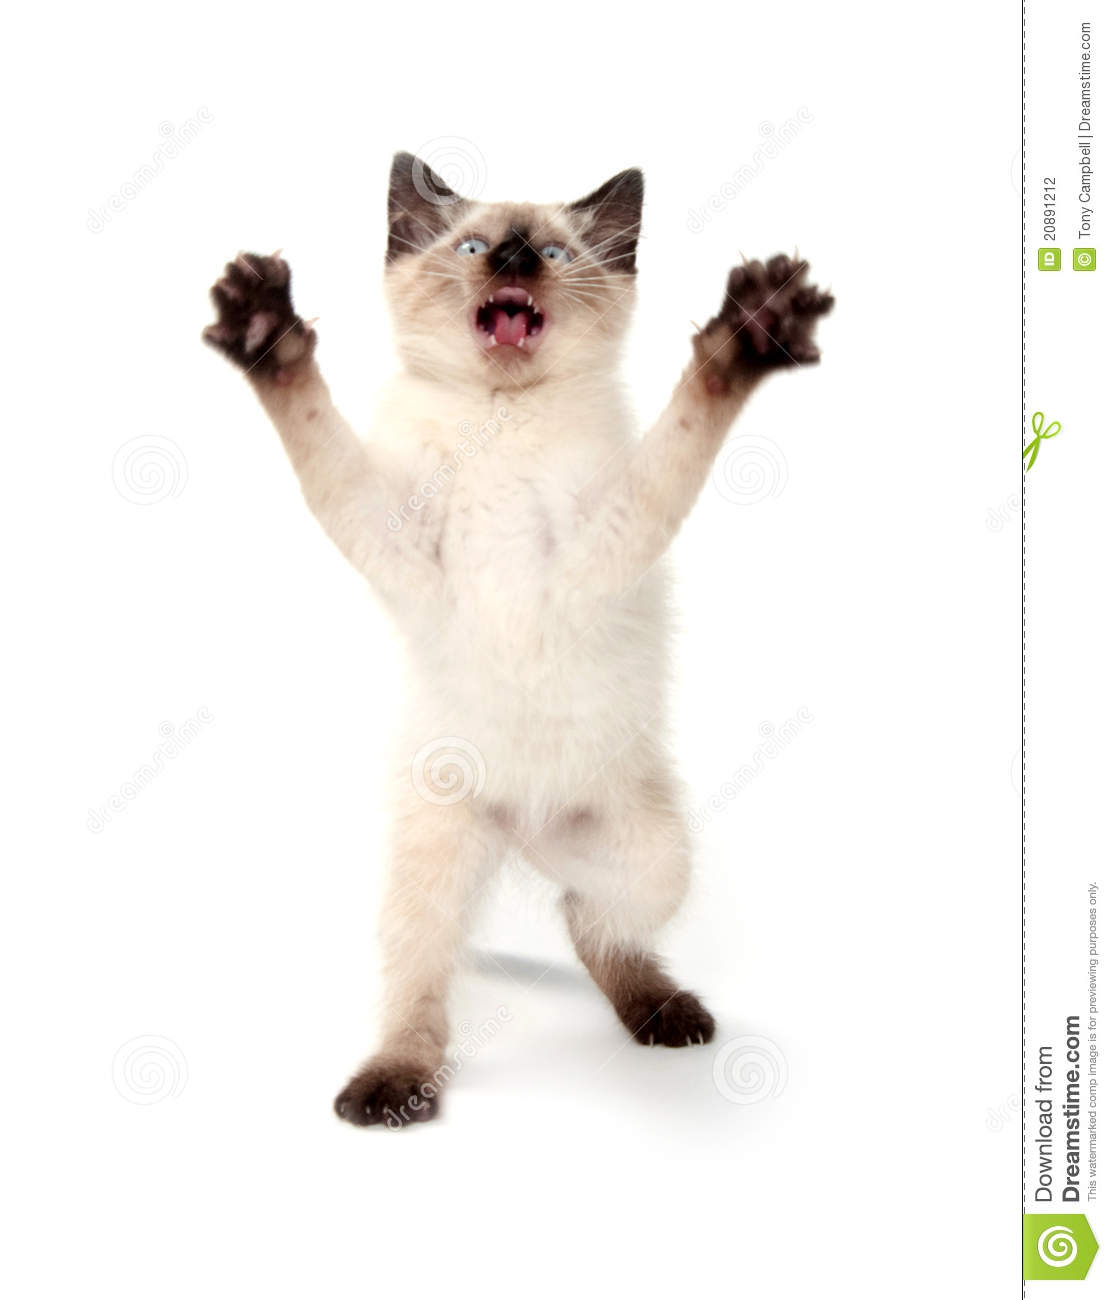 Cute Kitten Jumping Stock Photography - Image: 20891212